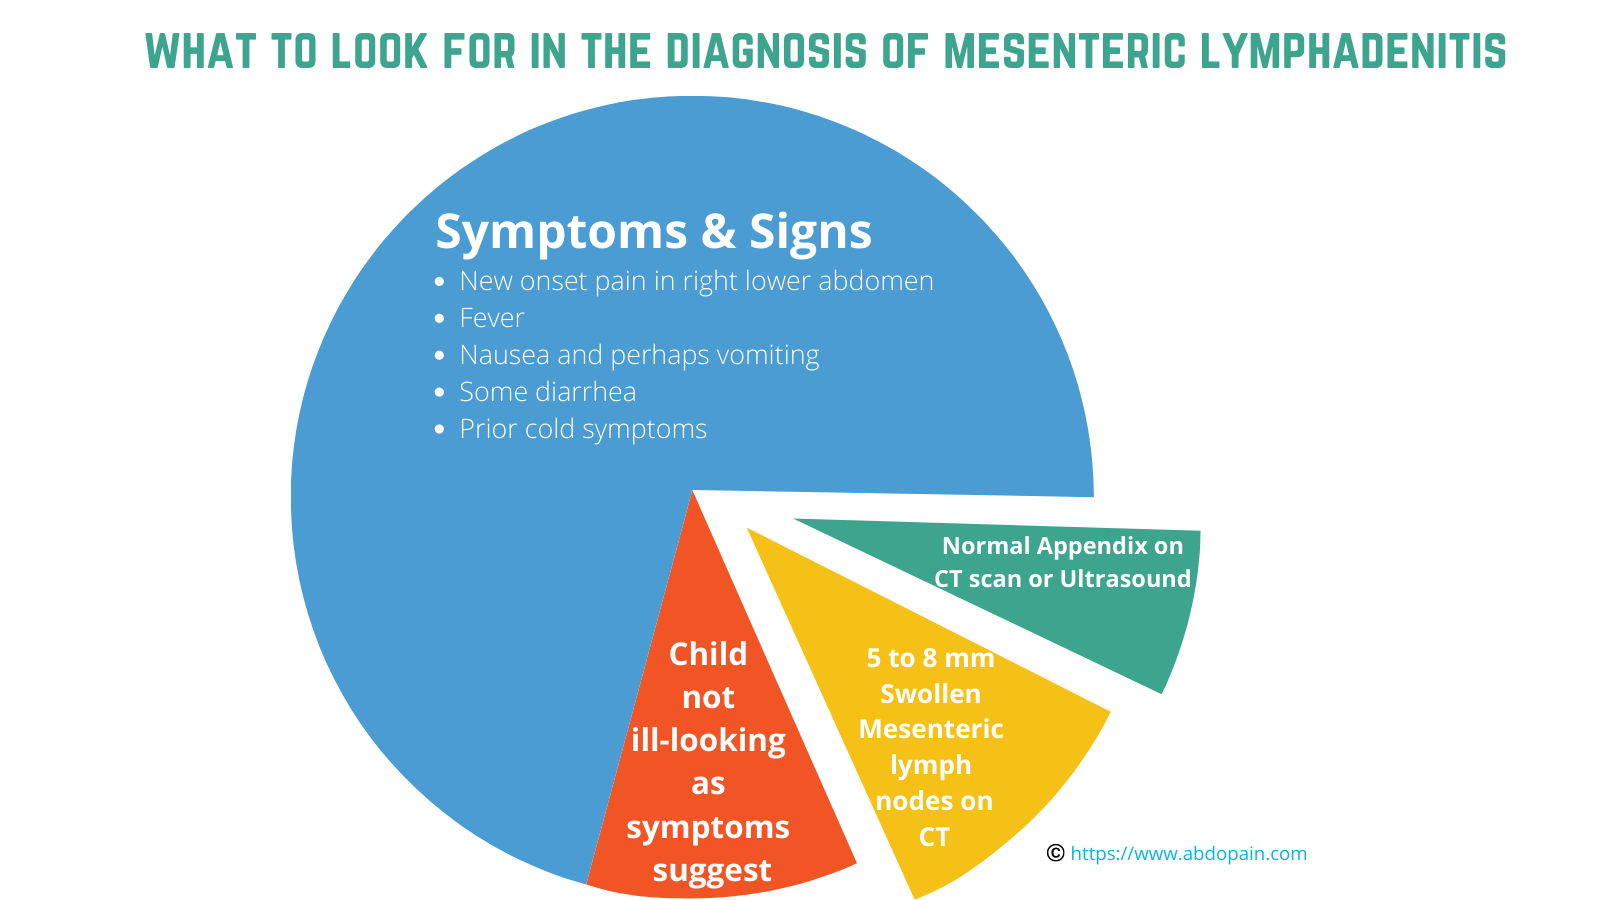 How is mesenteric lymphadenitis diagnosed?